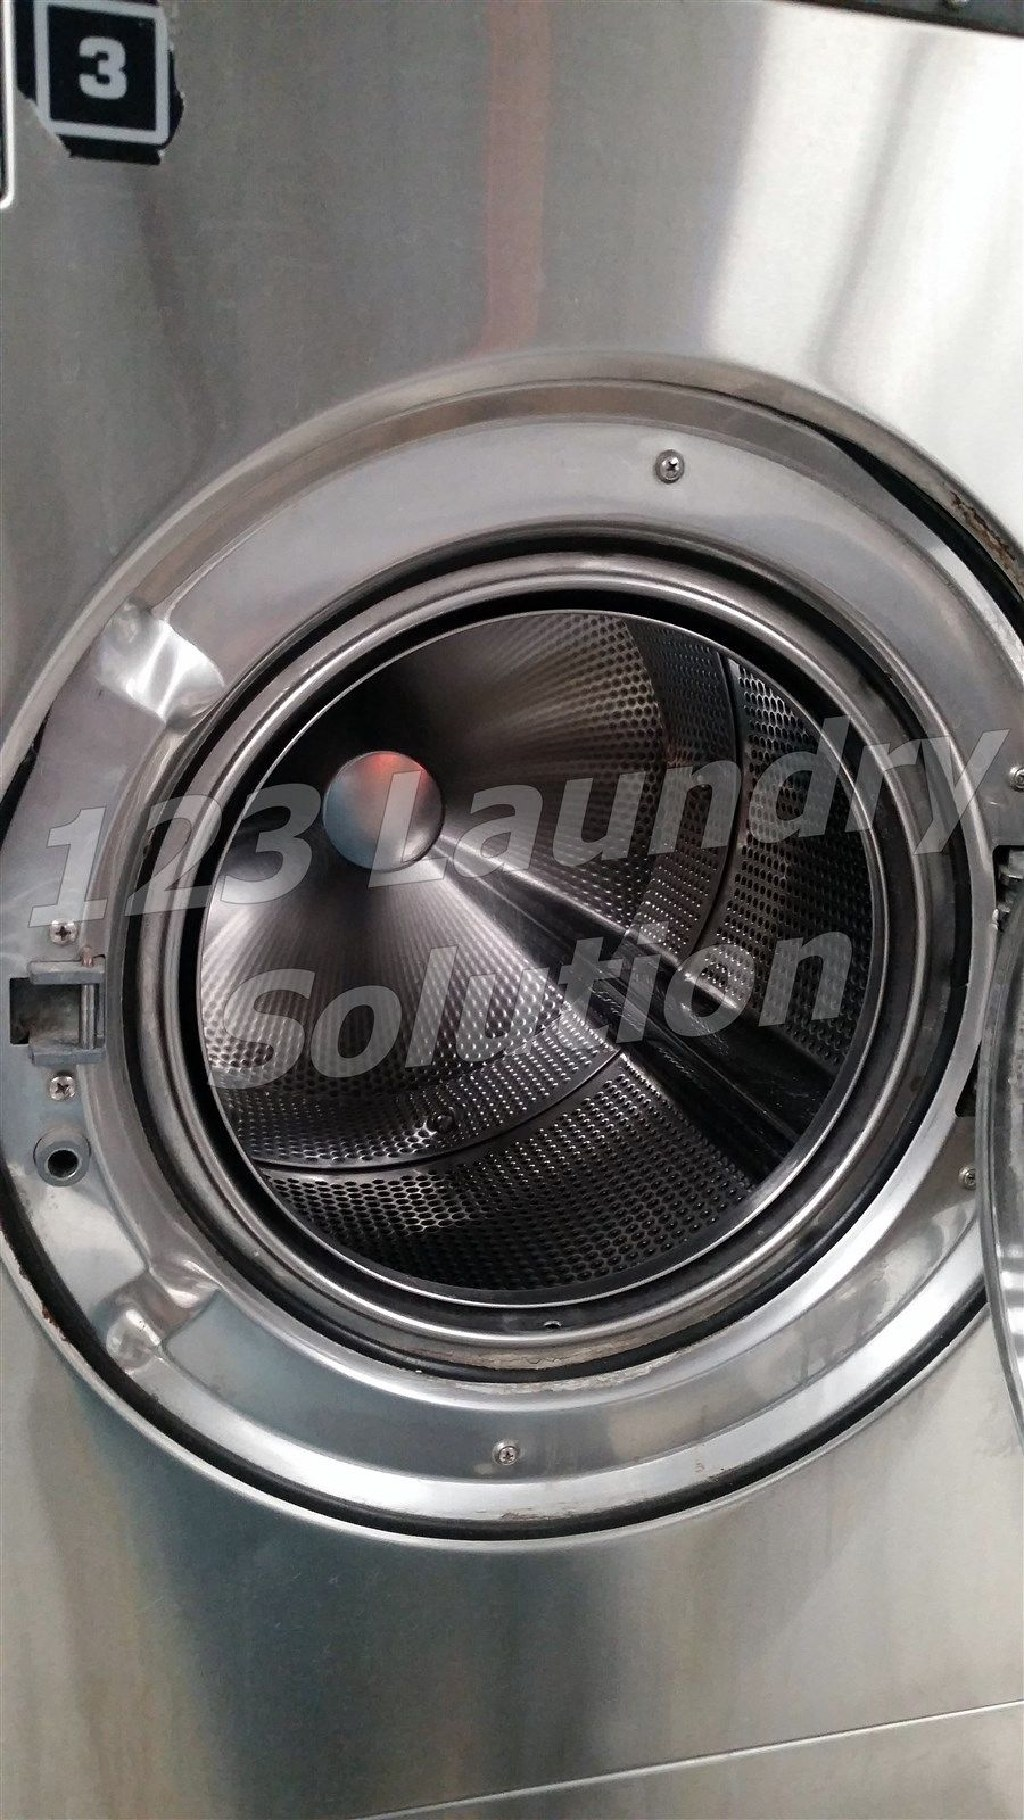 Coin Laundry Maytag Front Load Washer 25LB MFR25PDCWS 110-120v Stainless Steel Used